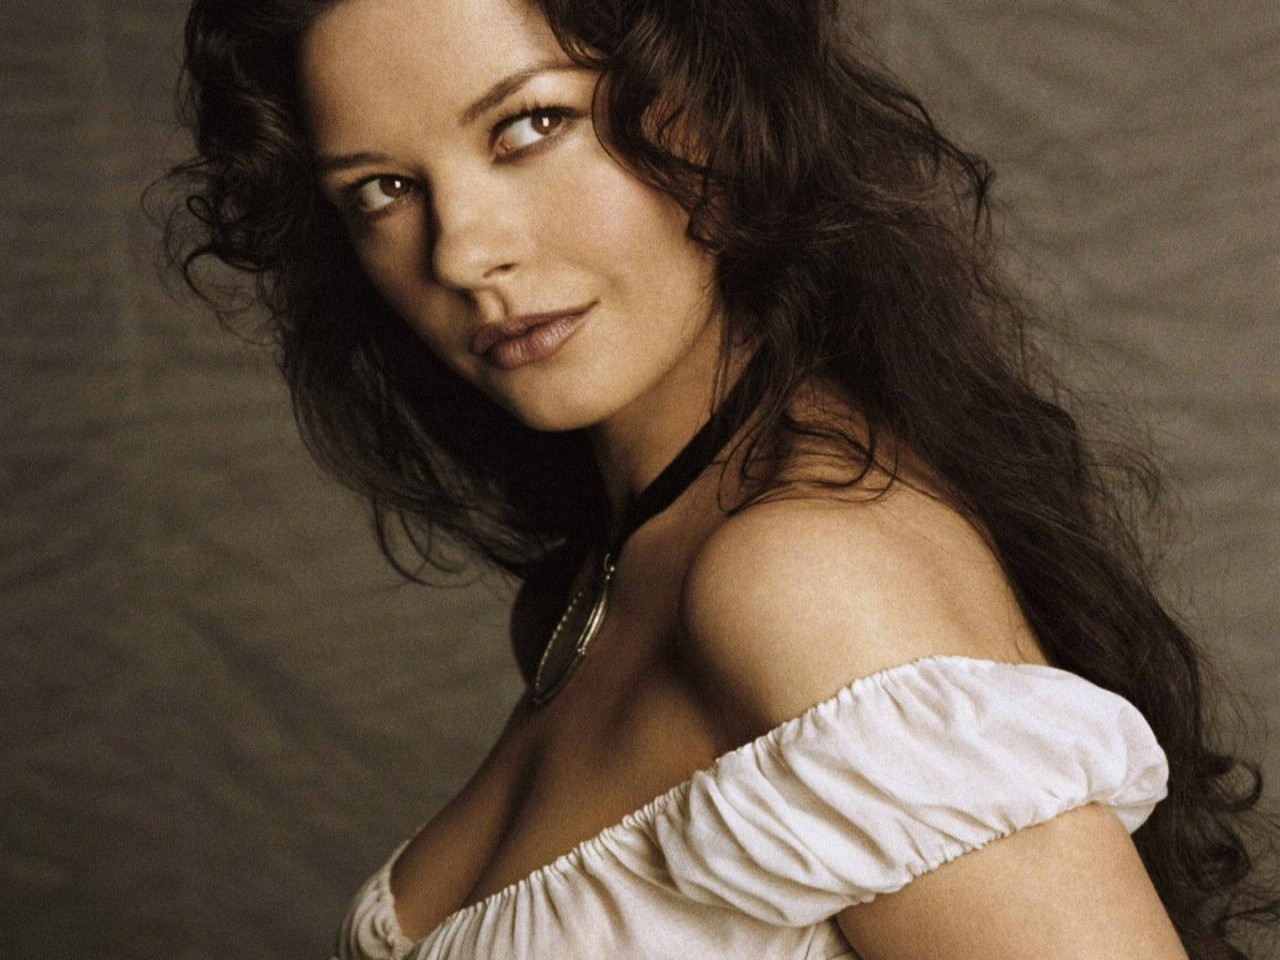 Wallpaper di Catherine Zeta-Jones - 19